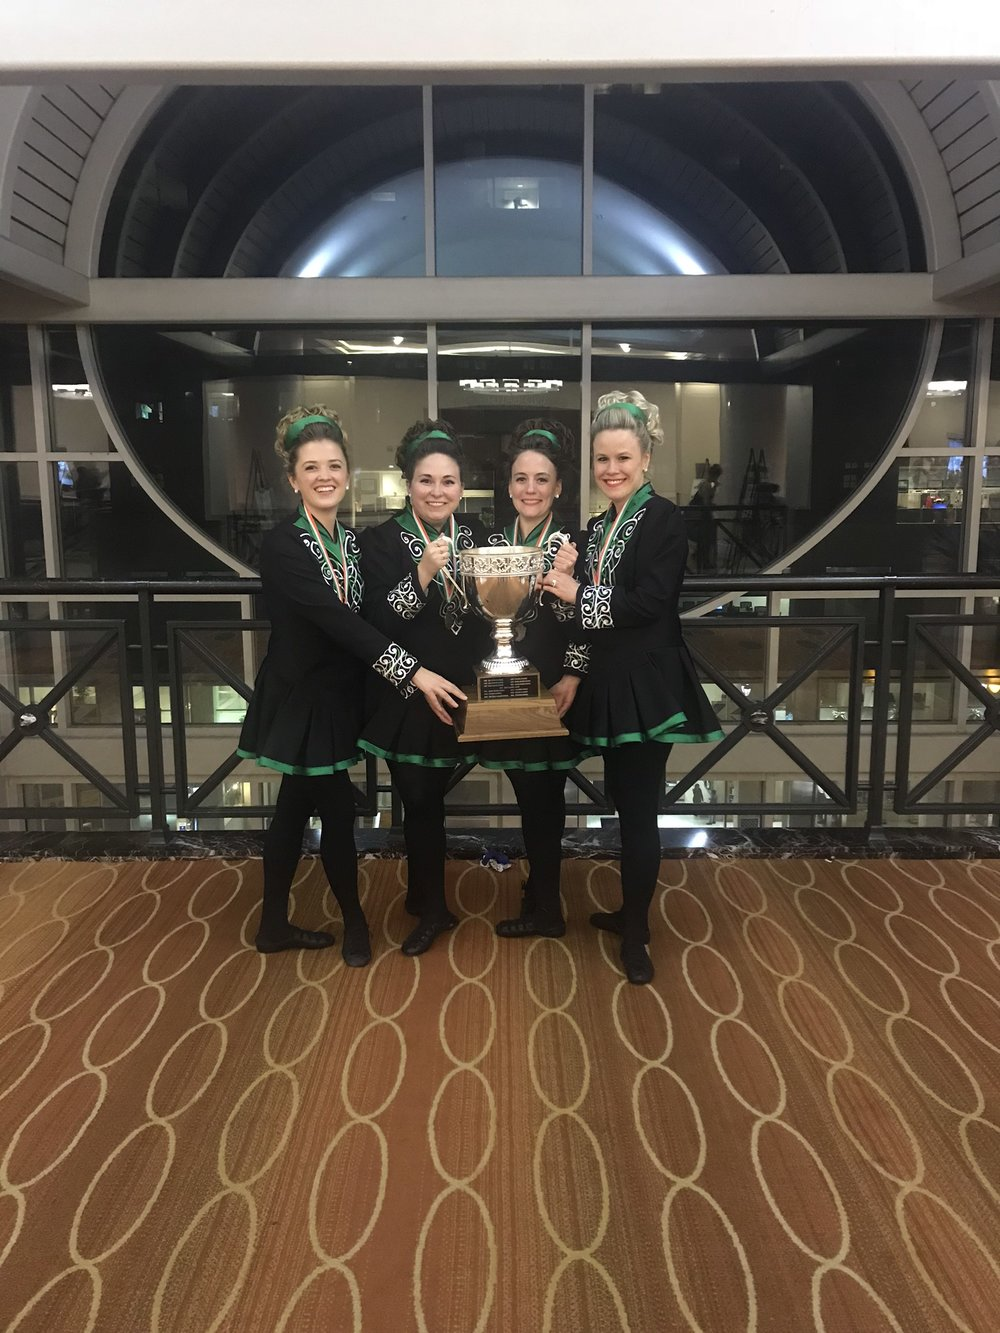 Aherne Sheehan Irish Dance Manhattan Upper East Side Winning Team TCRG Elise Wright Betty Sheehan.JPG